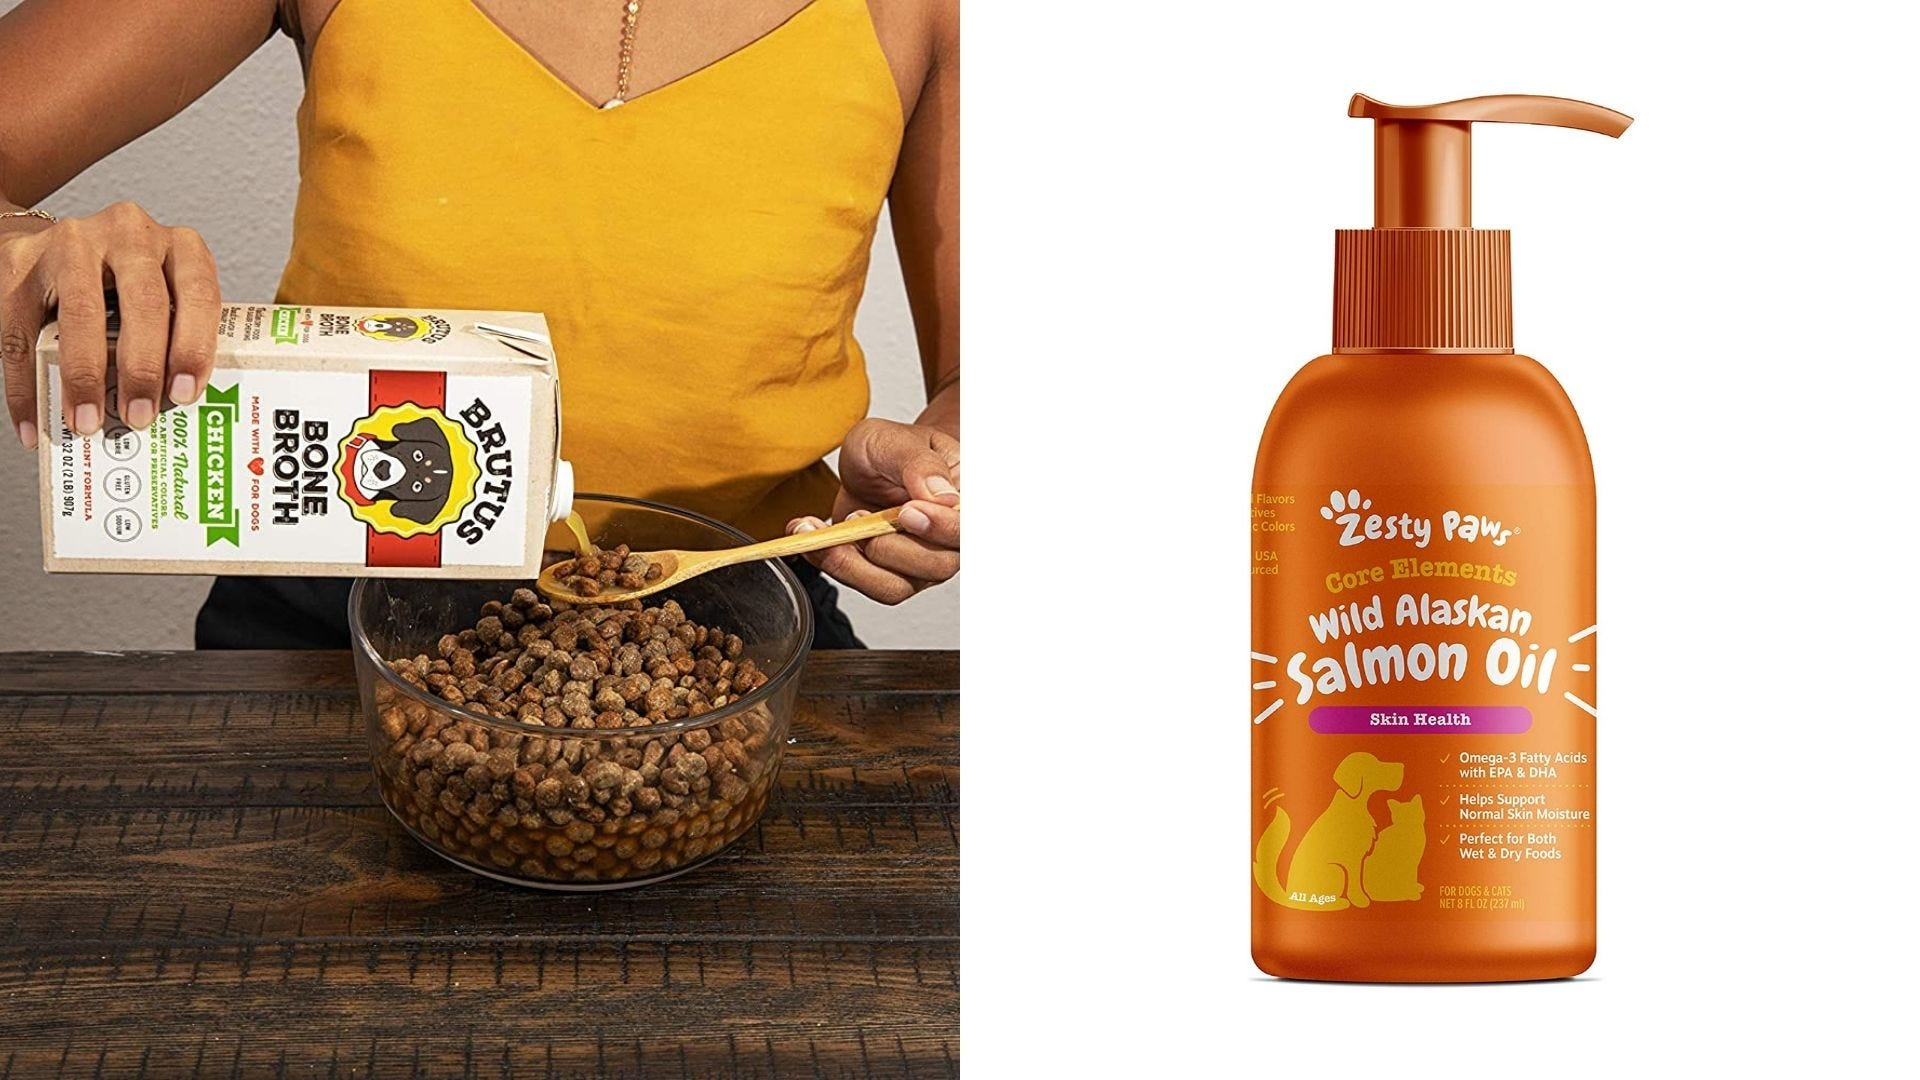 A woman pours bone broth on kibble and an orange bottle of salmon oil